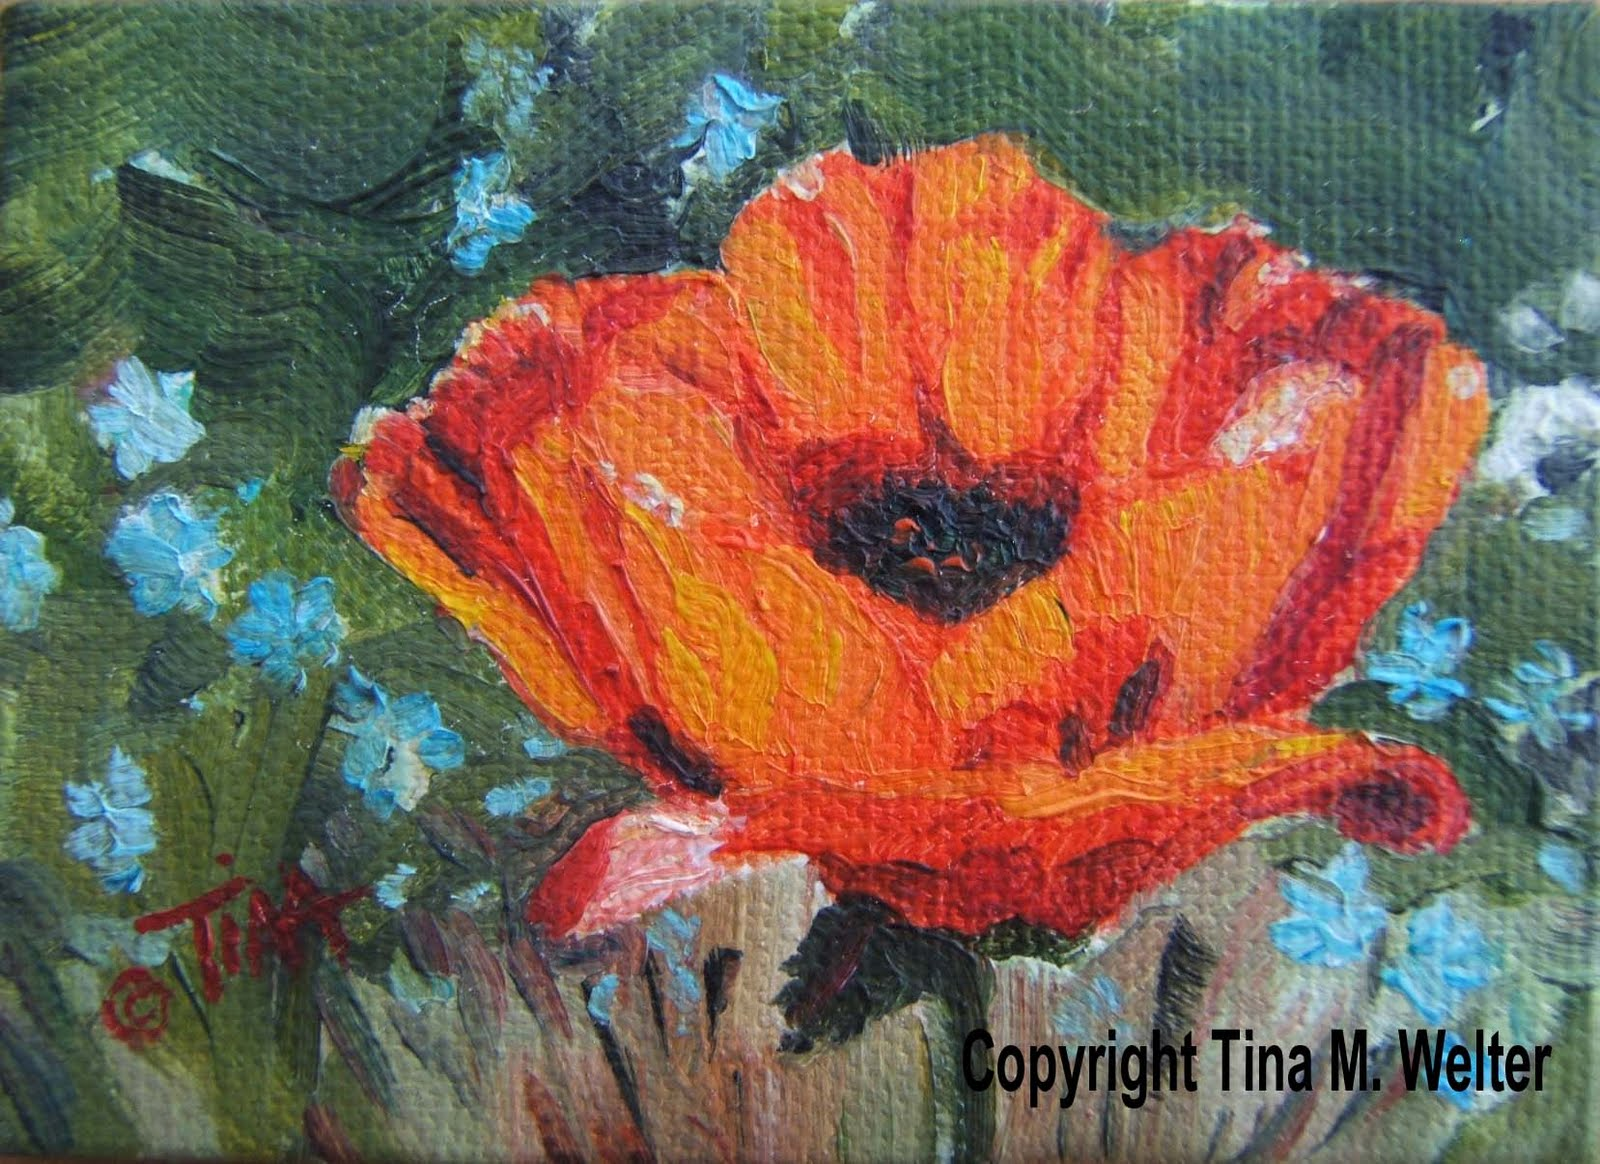 """2.5"""" x 3.5"""" oil on canvas, copyright 2010 Tina M. Welter"""